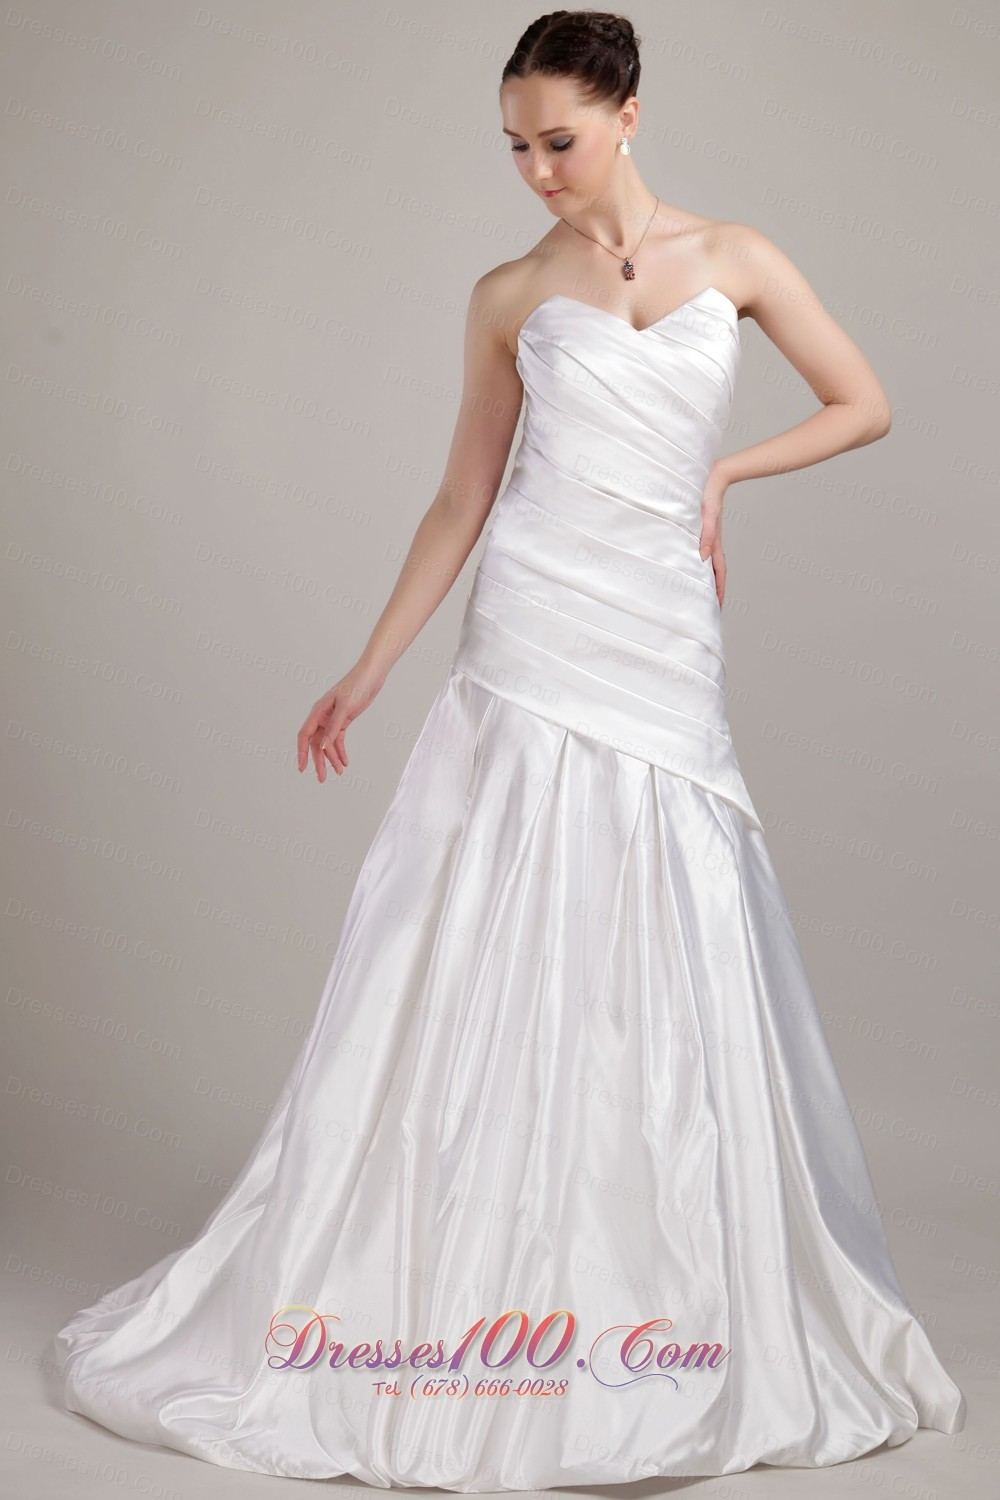 Low cost sweetheart a line wedding gown taffeta brush for Low price wedding dresses